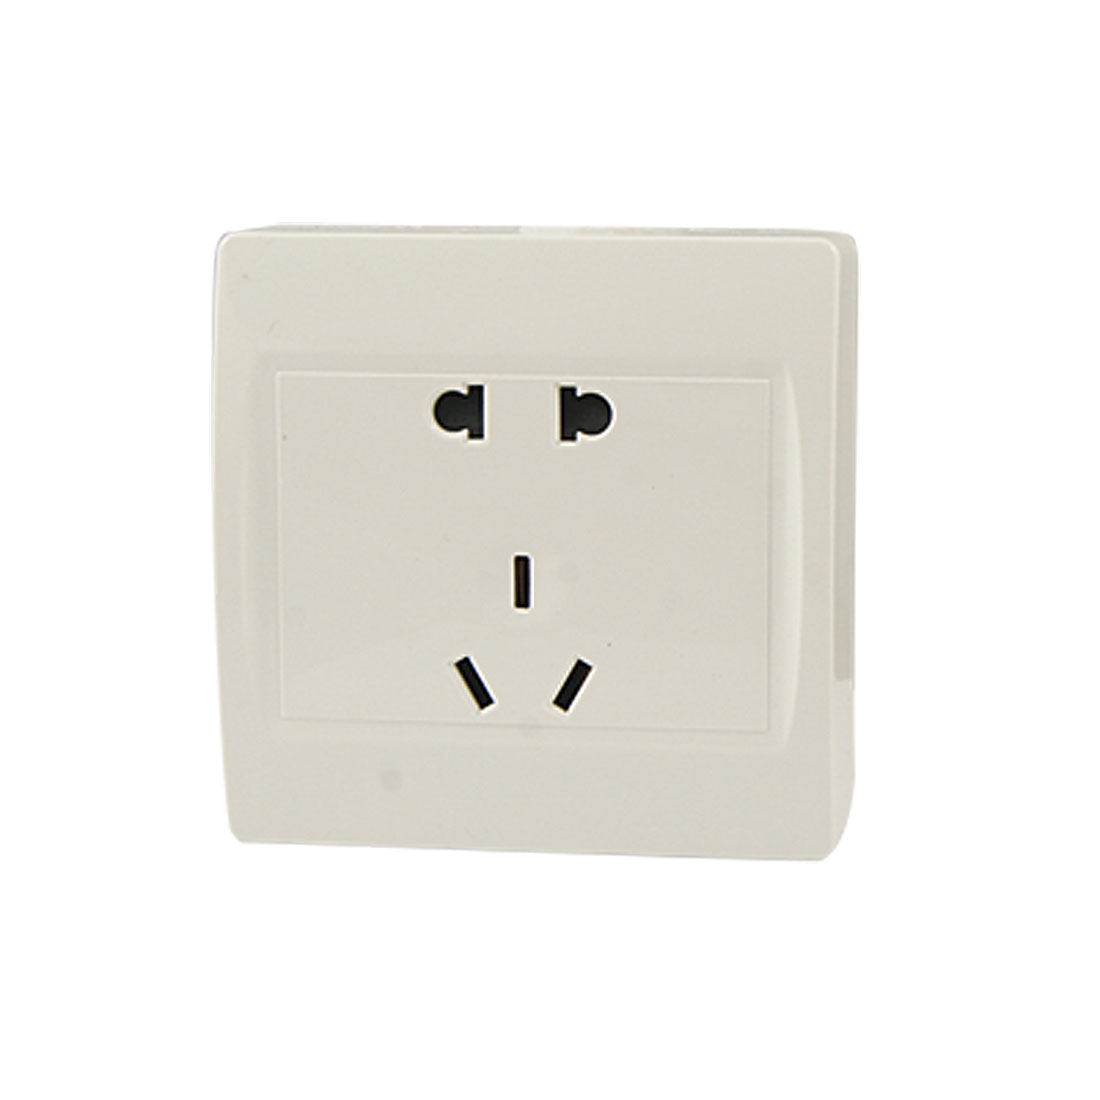 AC250V 10A 3 Pin AU Outlet 2 Pin US EU Socket Wall Plate